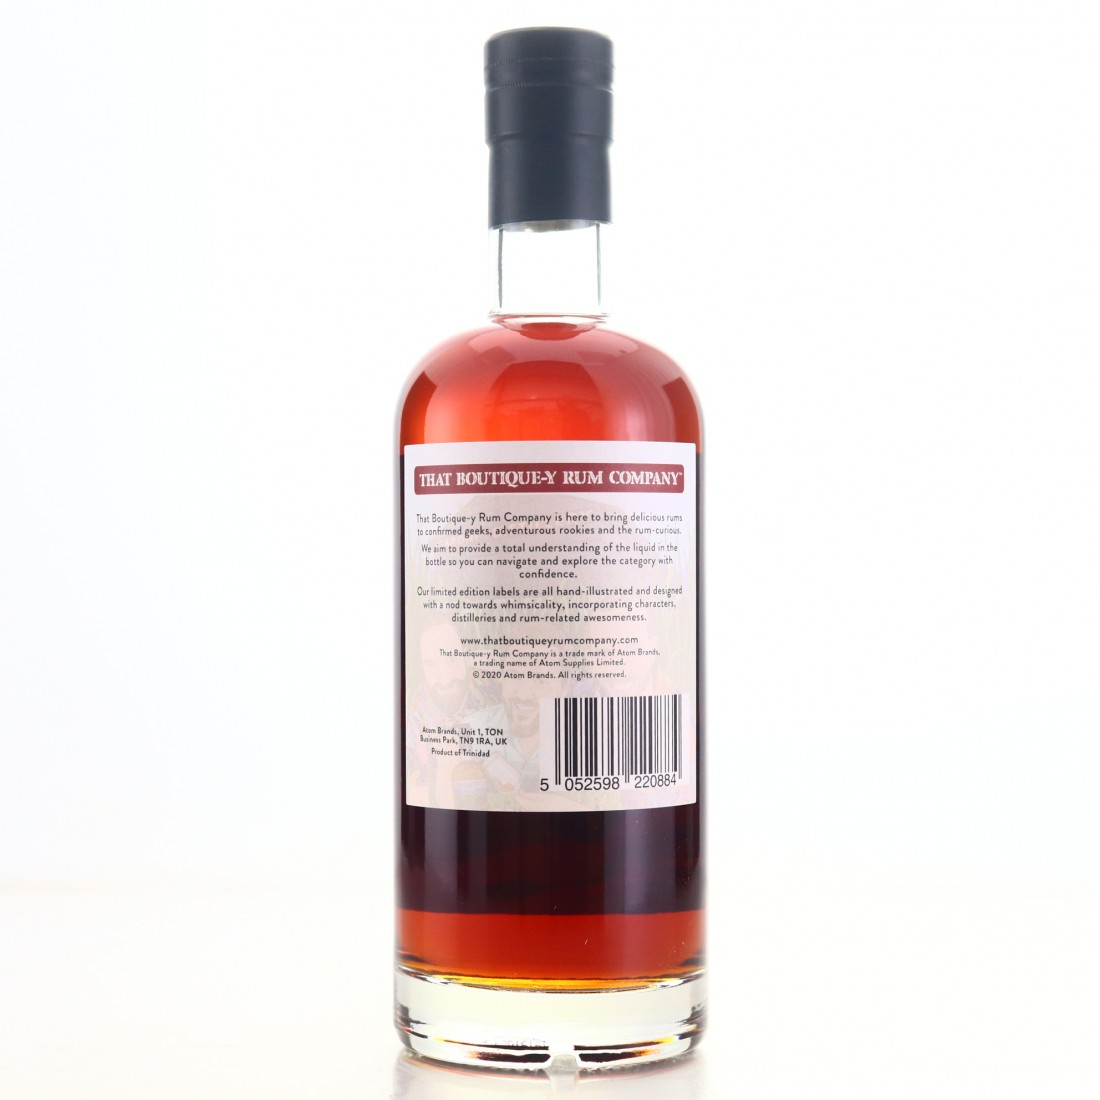 Caroni 22 Year Old That Boutique-y Rum Company Batch #4 / Kirsch